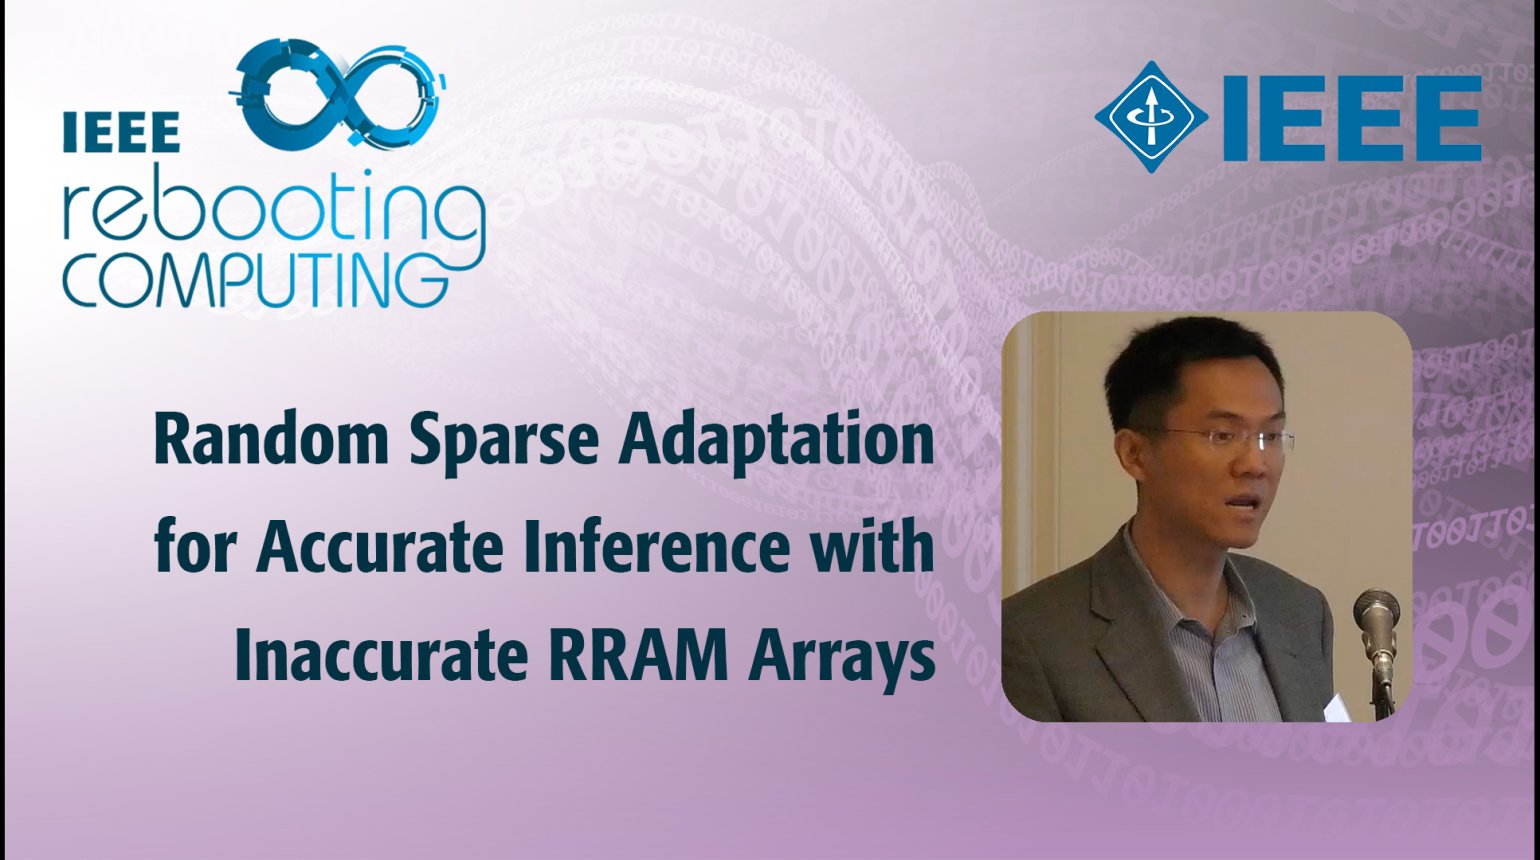 Random Sparse Adaptation for Accurate Inference with Inaccurate RRAM Arrays - IEEE Rebooting Computing 2017